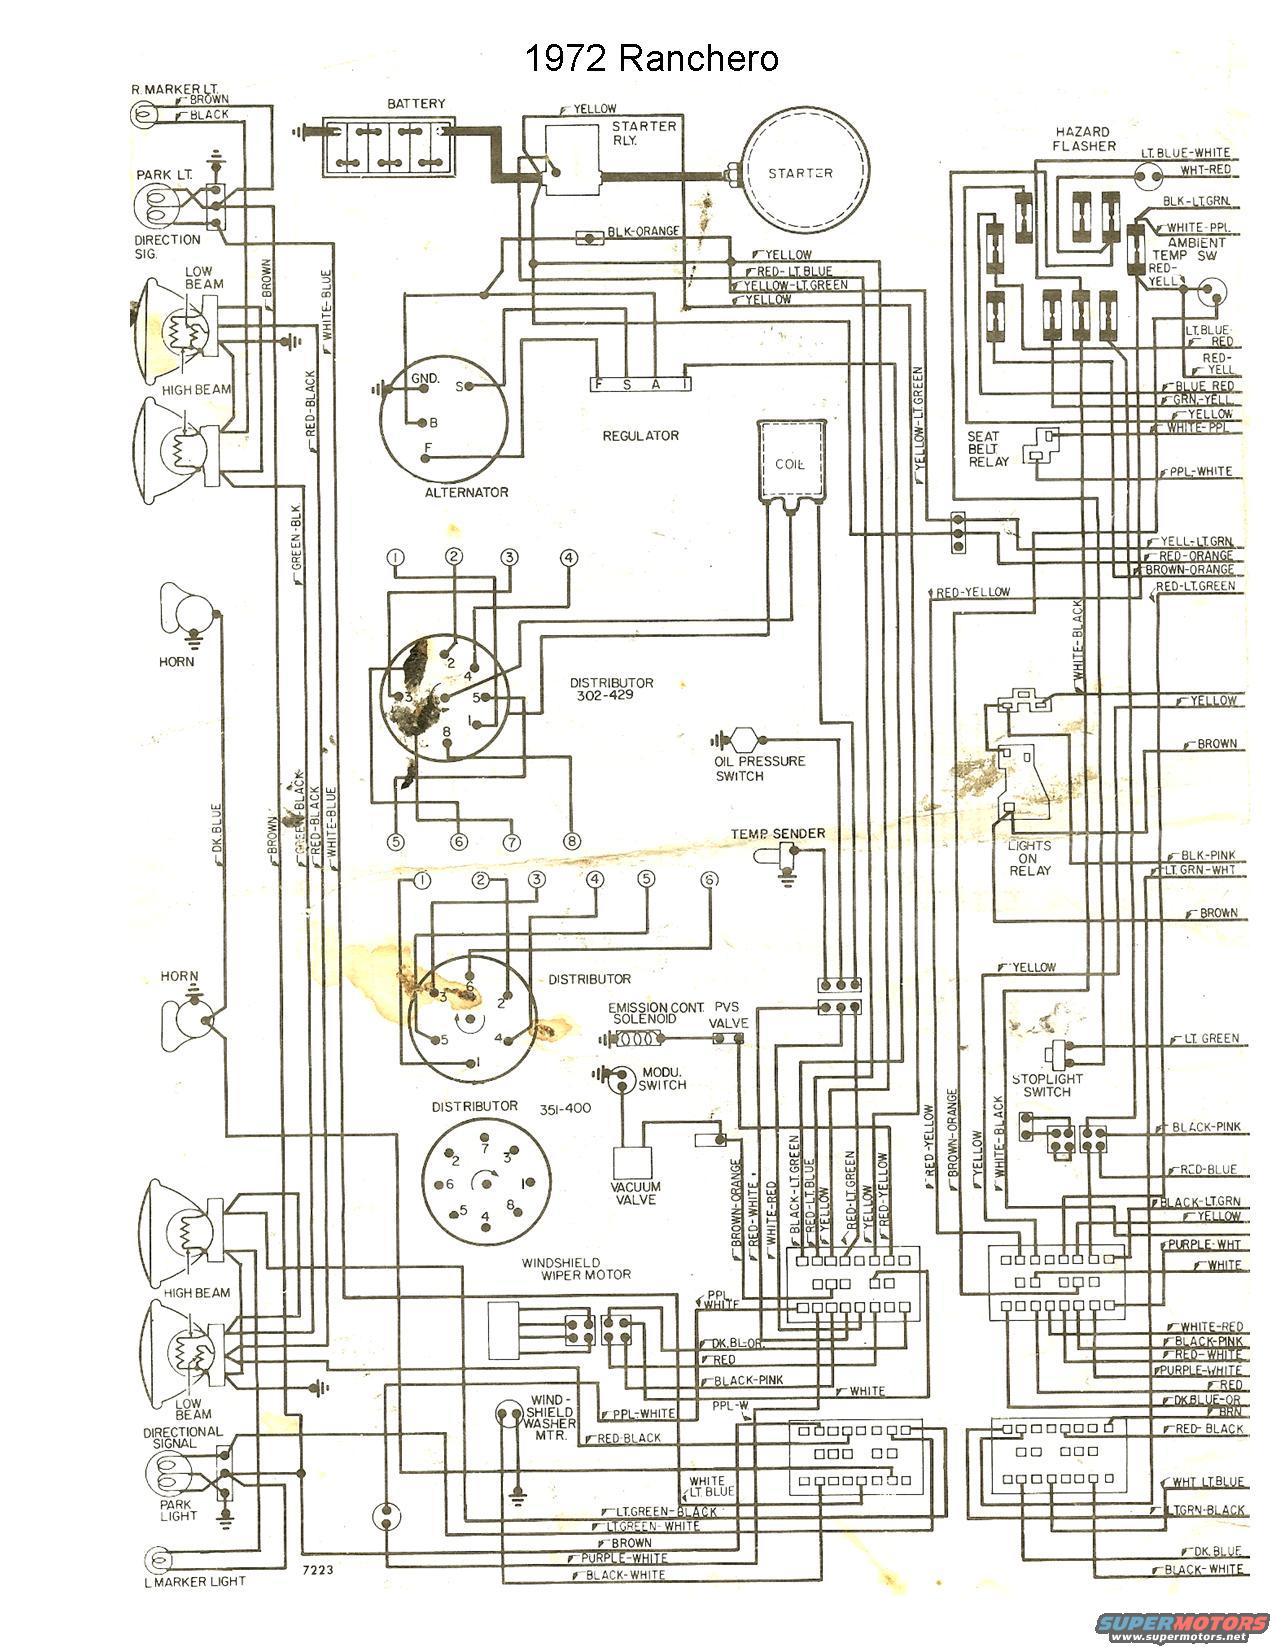 ford fairlane torino wiring diagrams trusted wiring diagram u2022 rh soulmatestyle co 1967 ford fairlane wiring diagram Ford Truck Wiring Diagrams